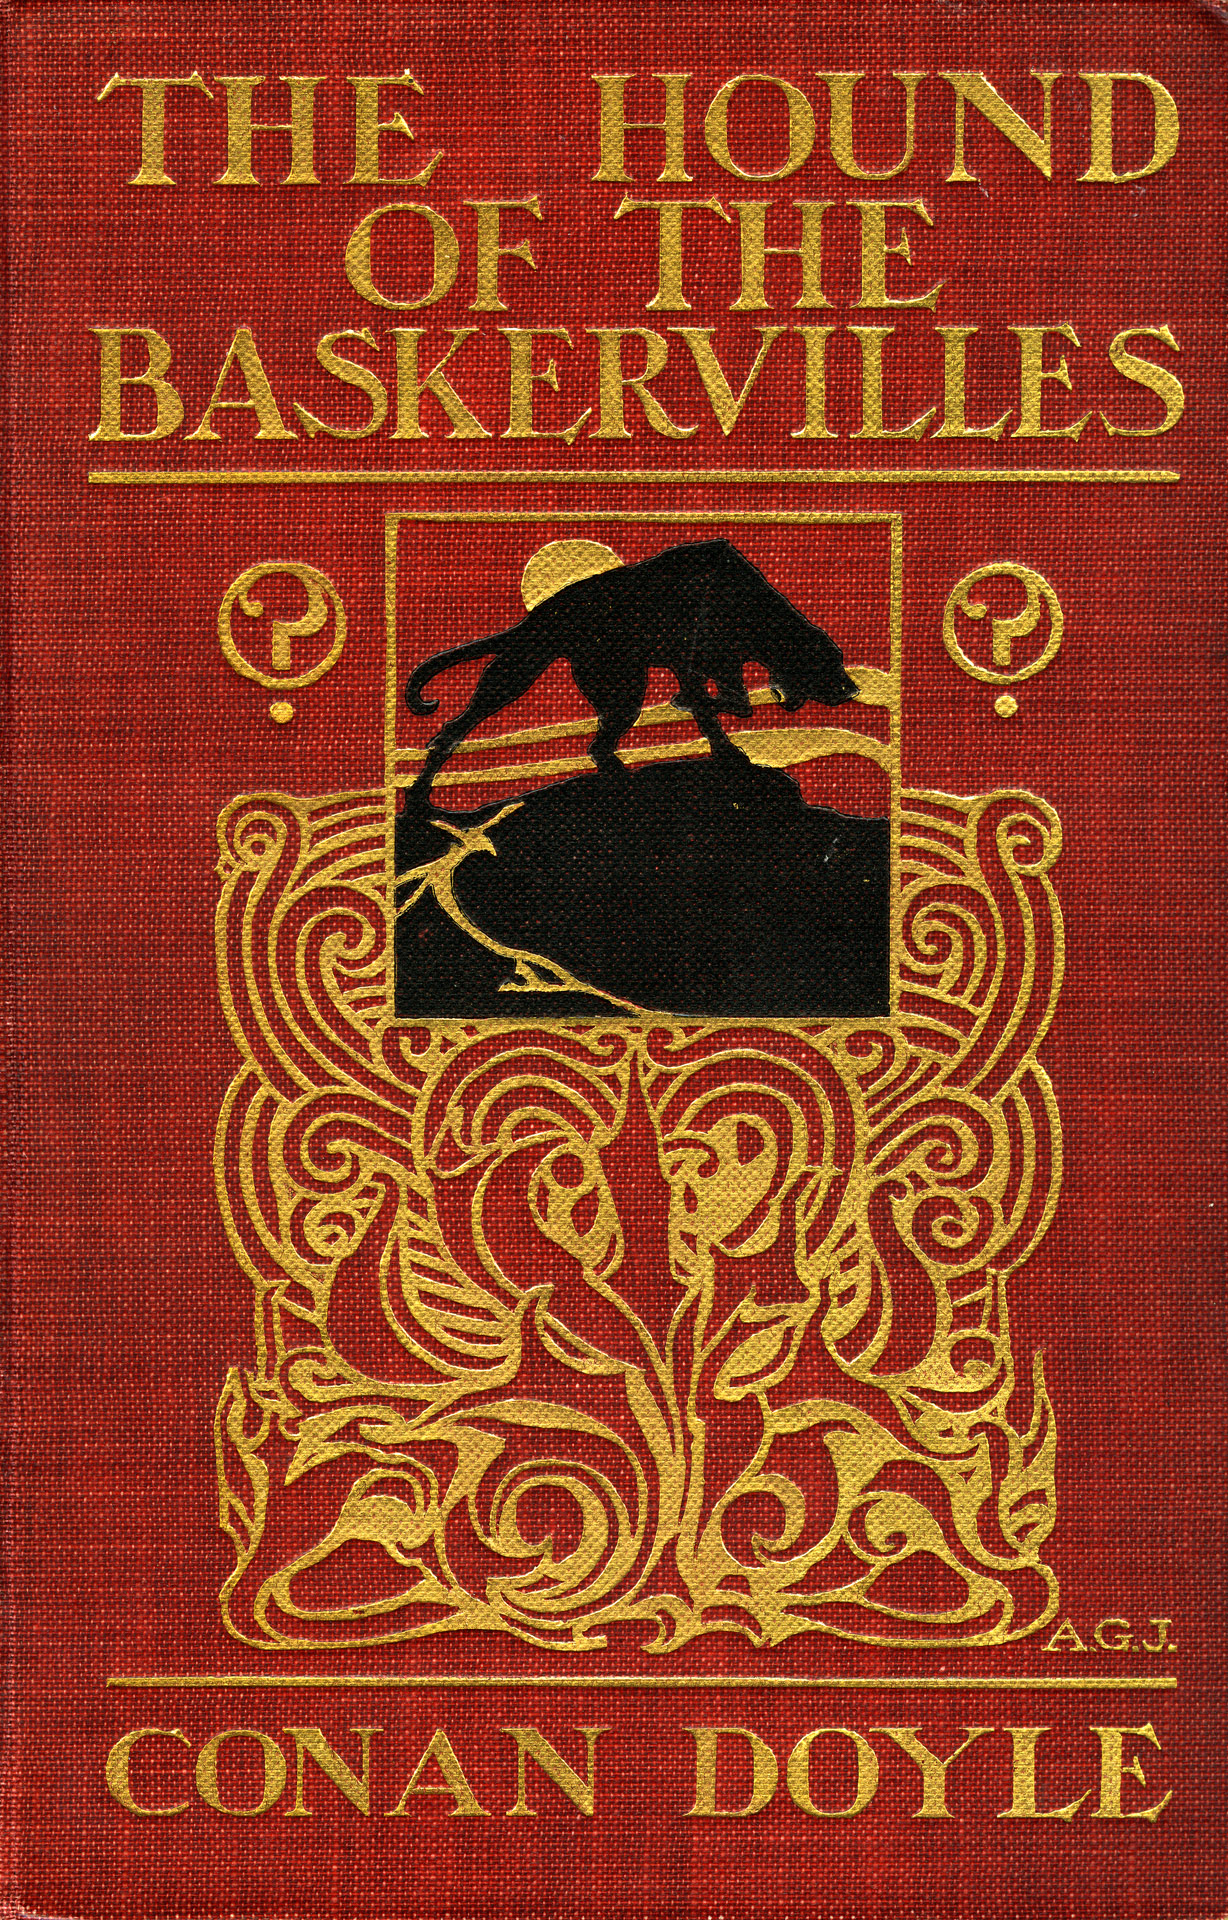 a review of the book the hound of the baskervilles by sir arthur conan doyle The hound of baskervilles (9780141329390) by sir arthur conan doyle.